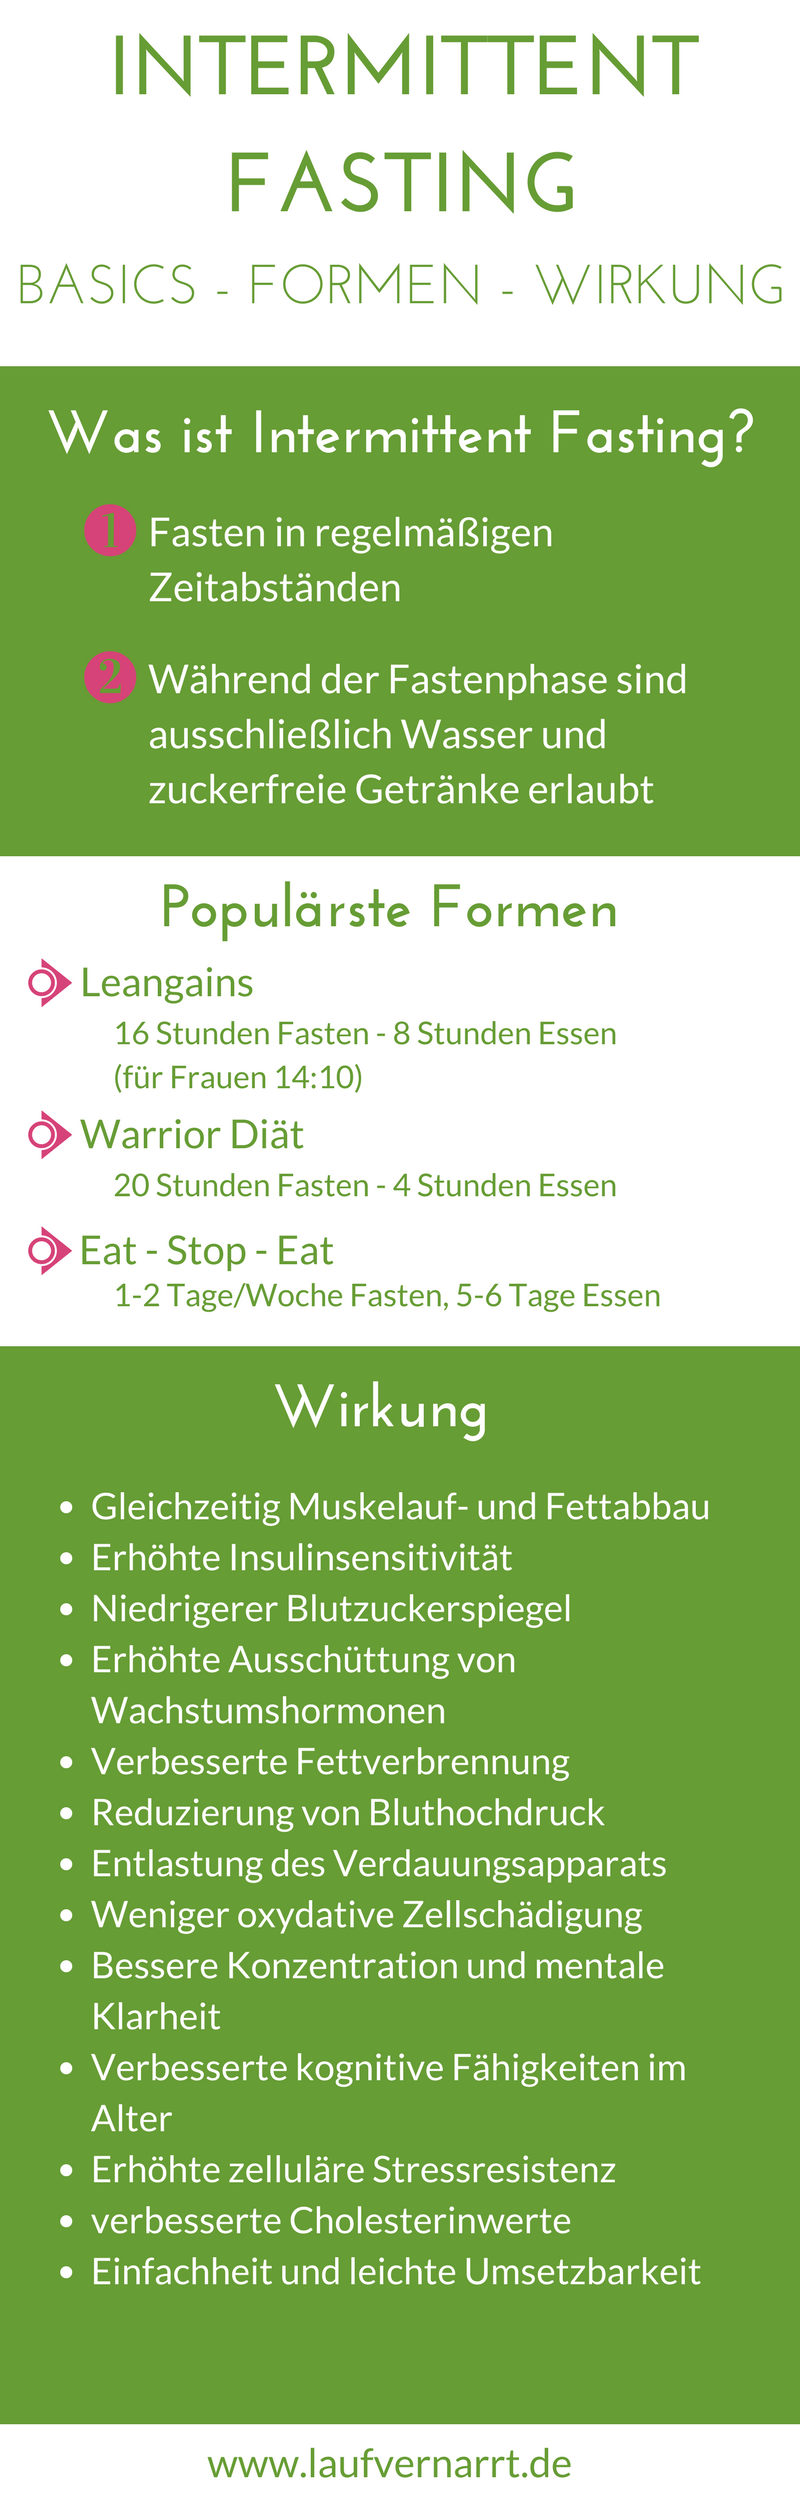 Photo of Intermittent Fasting: Lean Gains – Basics, Formen, Wirkung